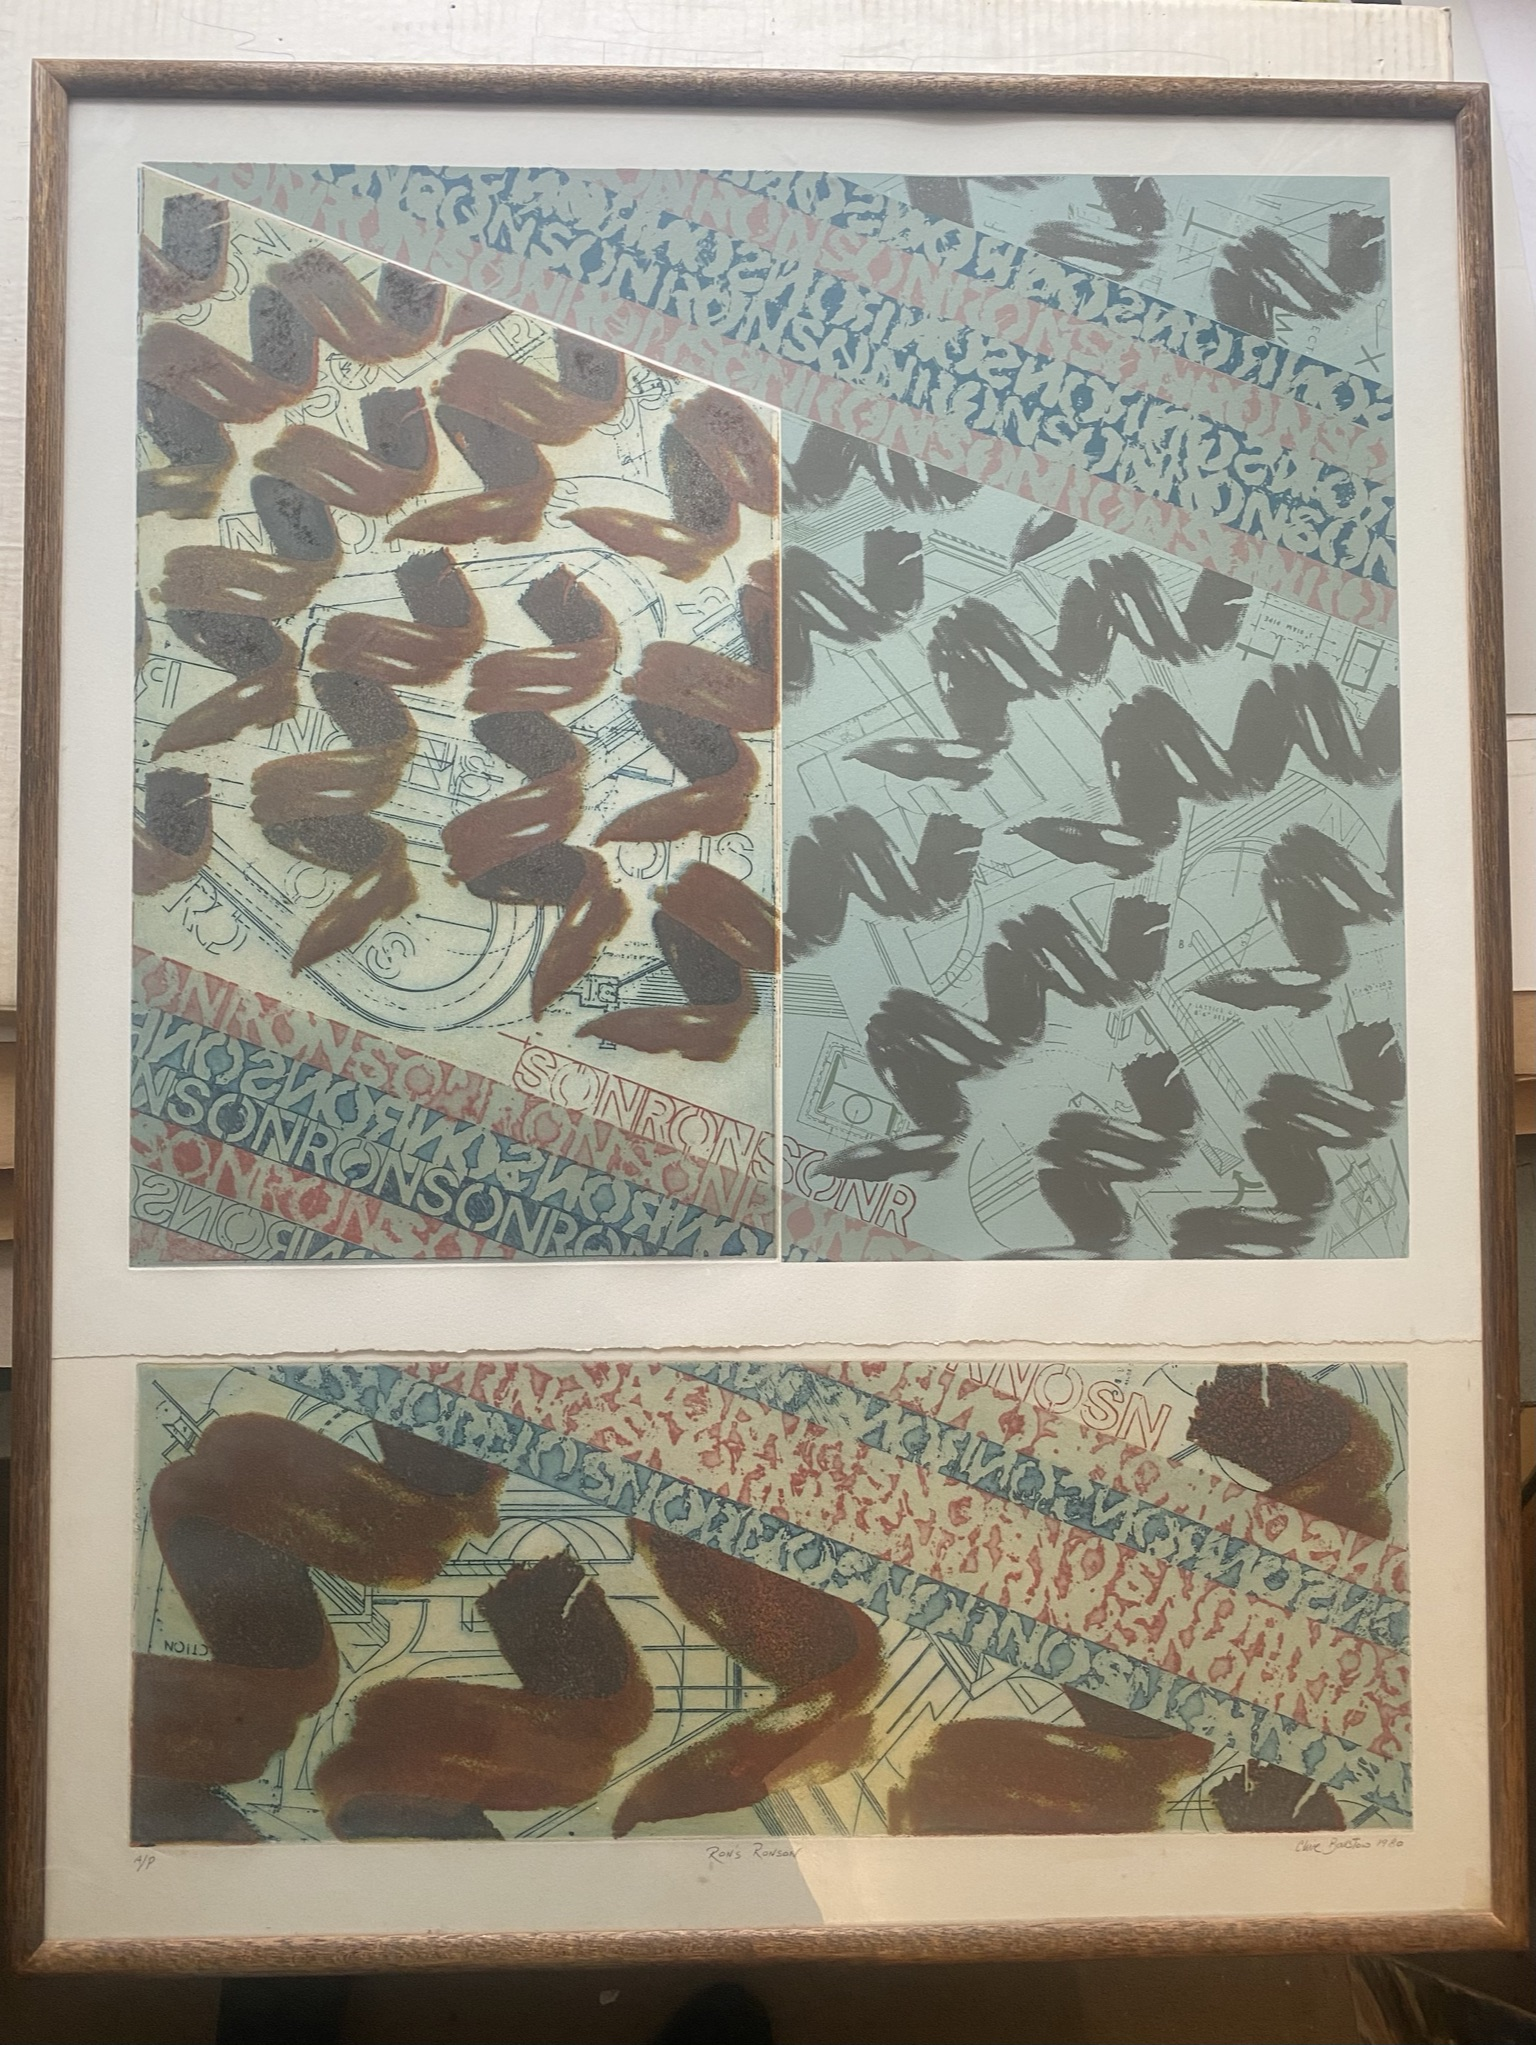 """Clive Bristow """"Rons Ronson"""" artists proof - Image 2 of 5"""